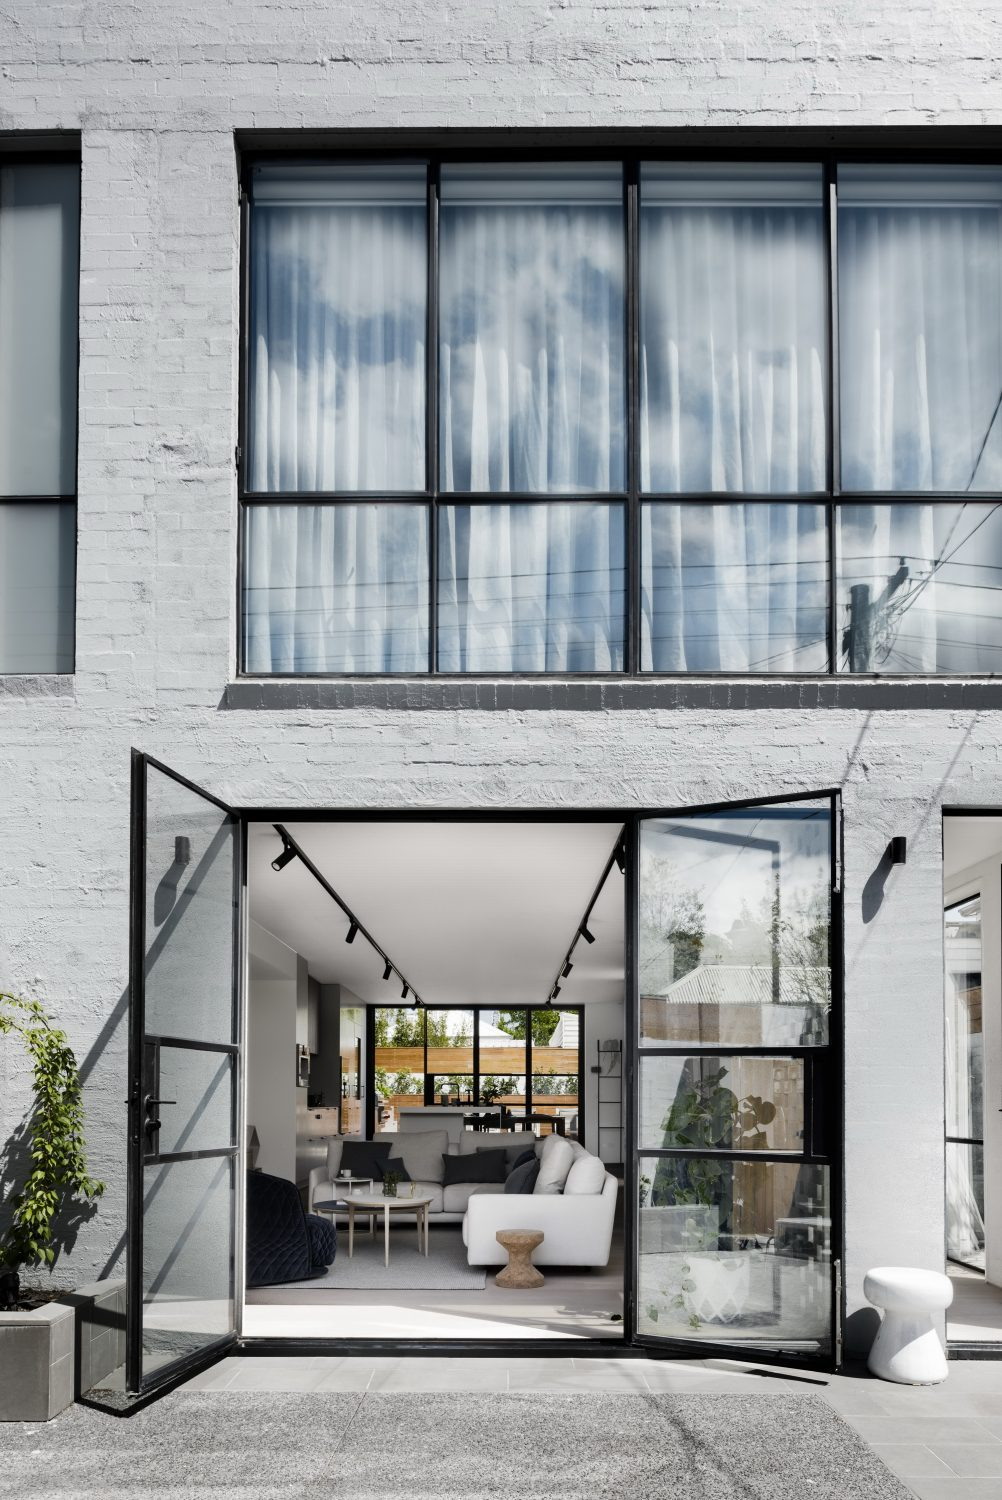 Bell Street House by Techne Architecture + Interior Design